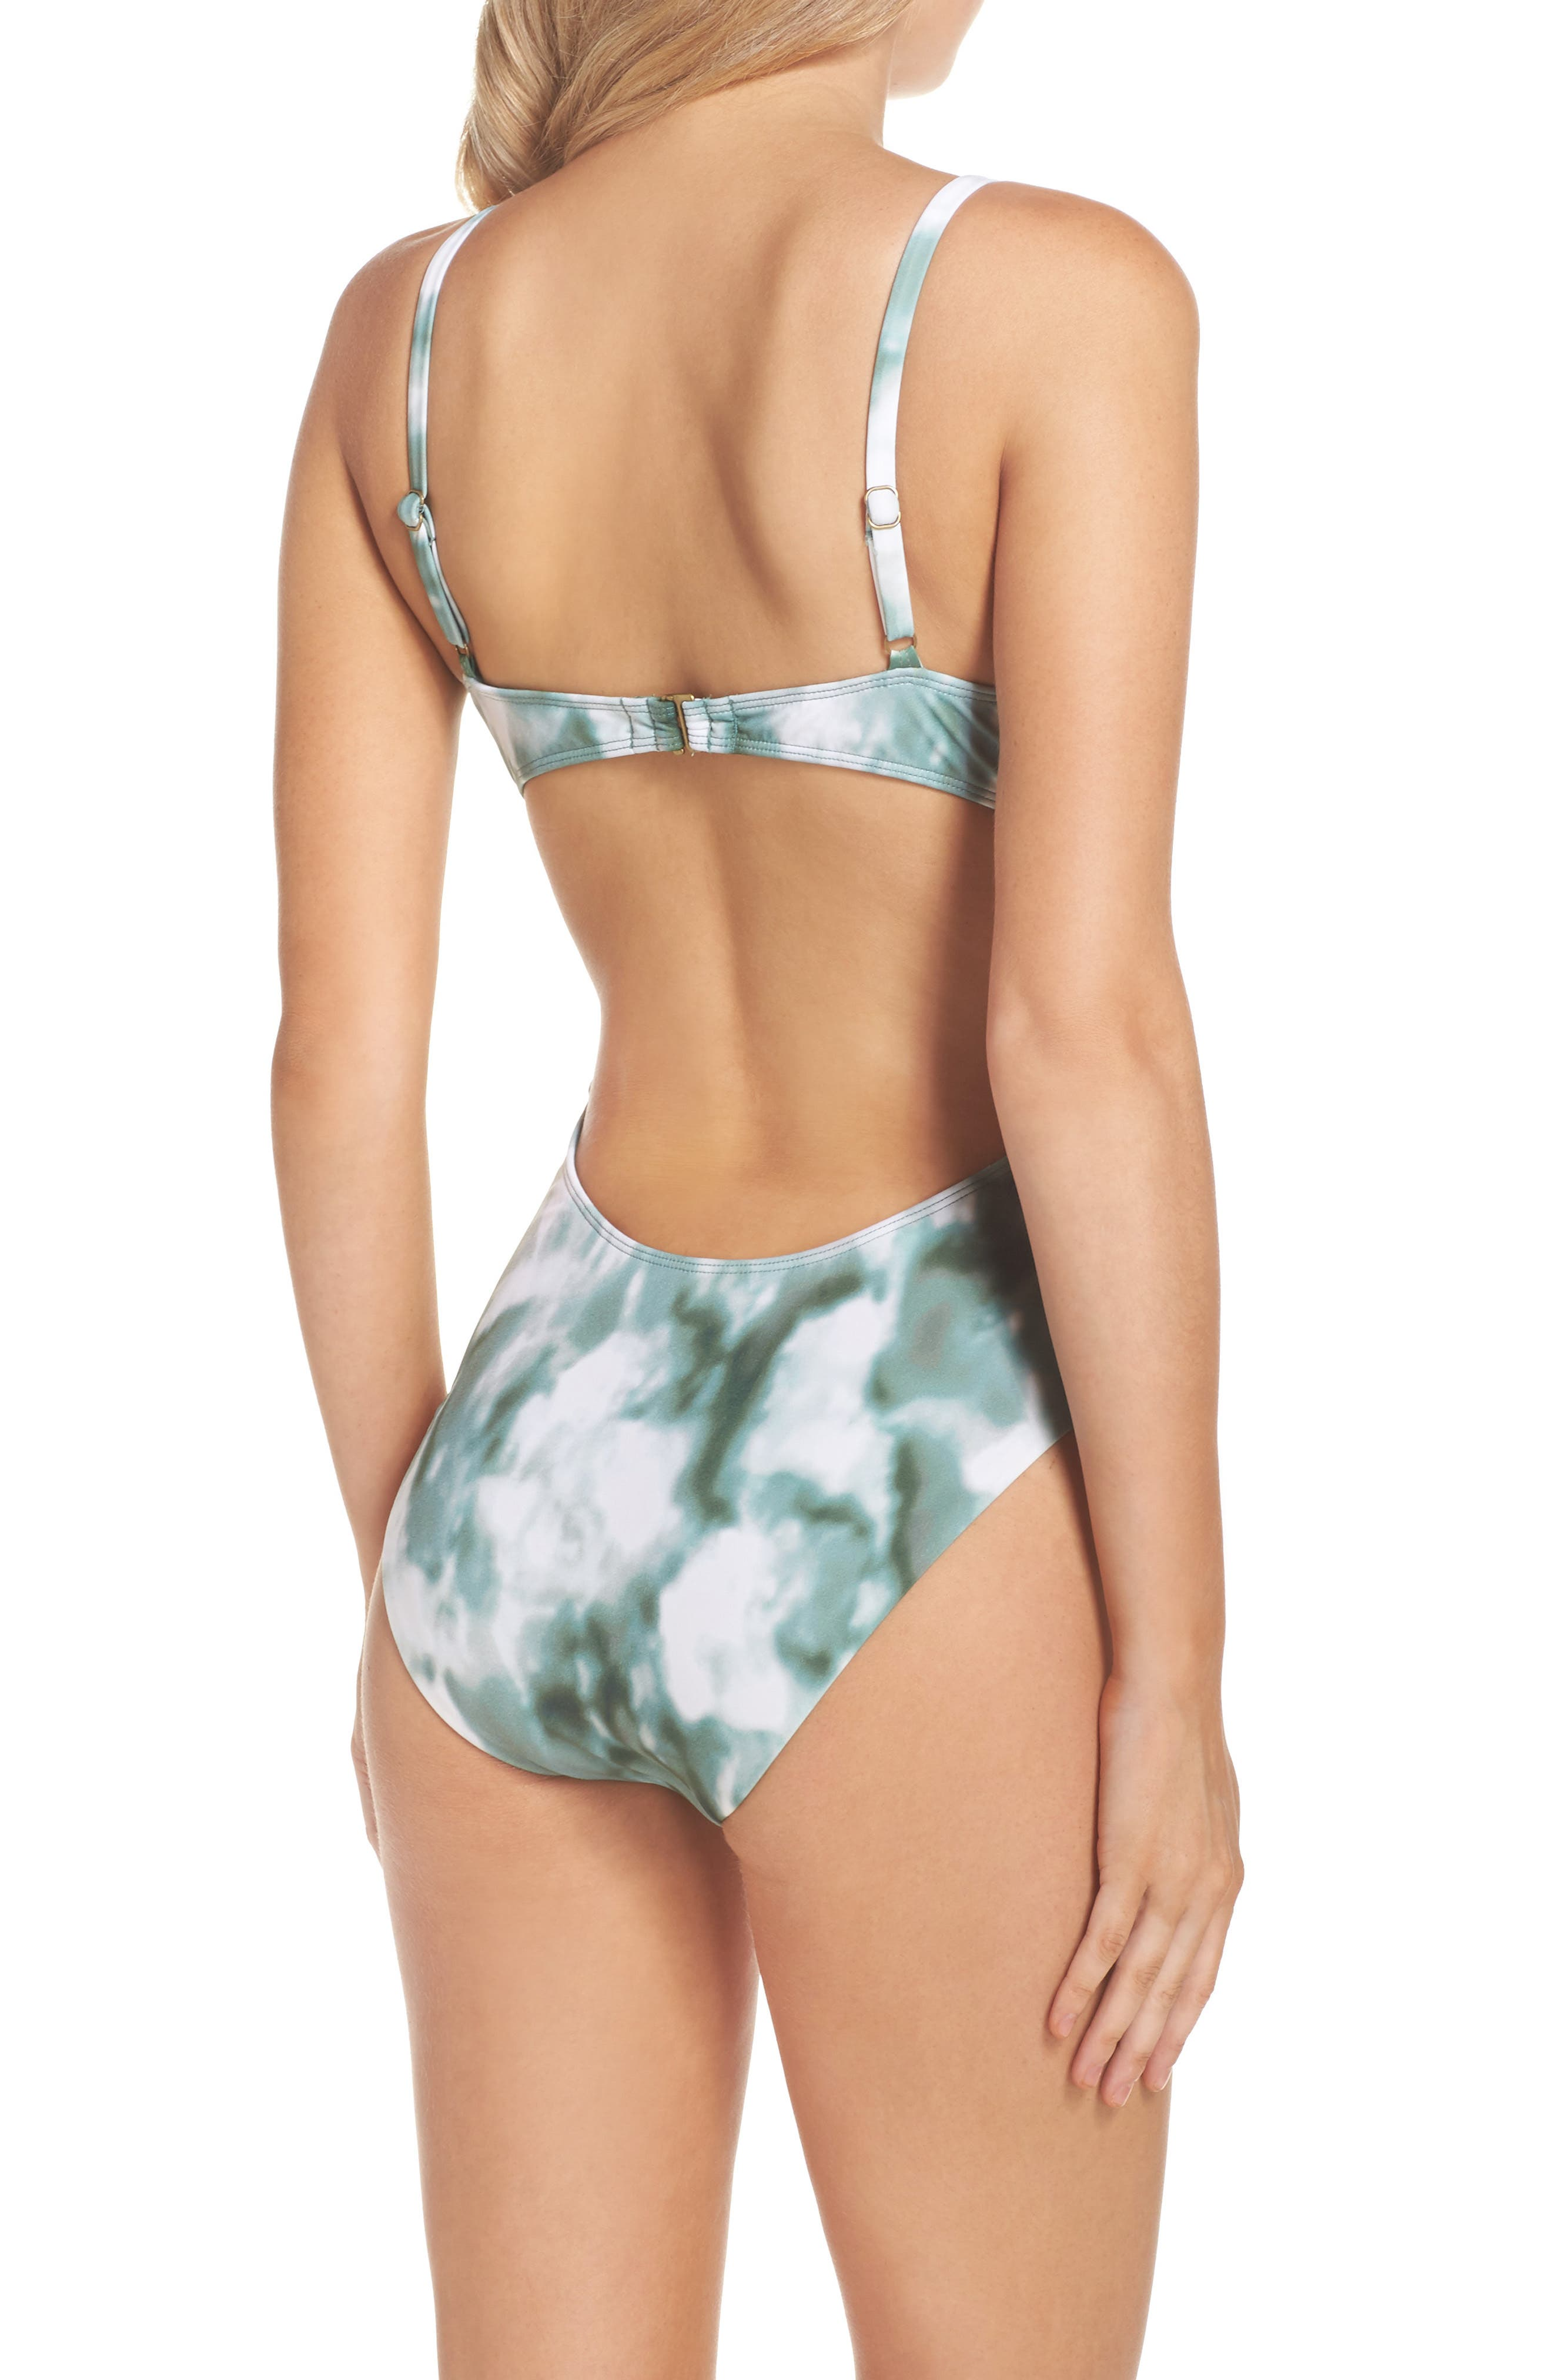 Indian Summer One-Piece Swimsuit,                             Alternate thumbnail 2, color,                             302